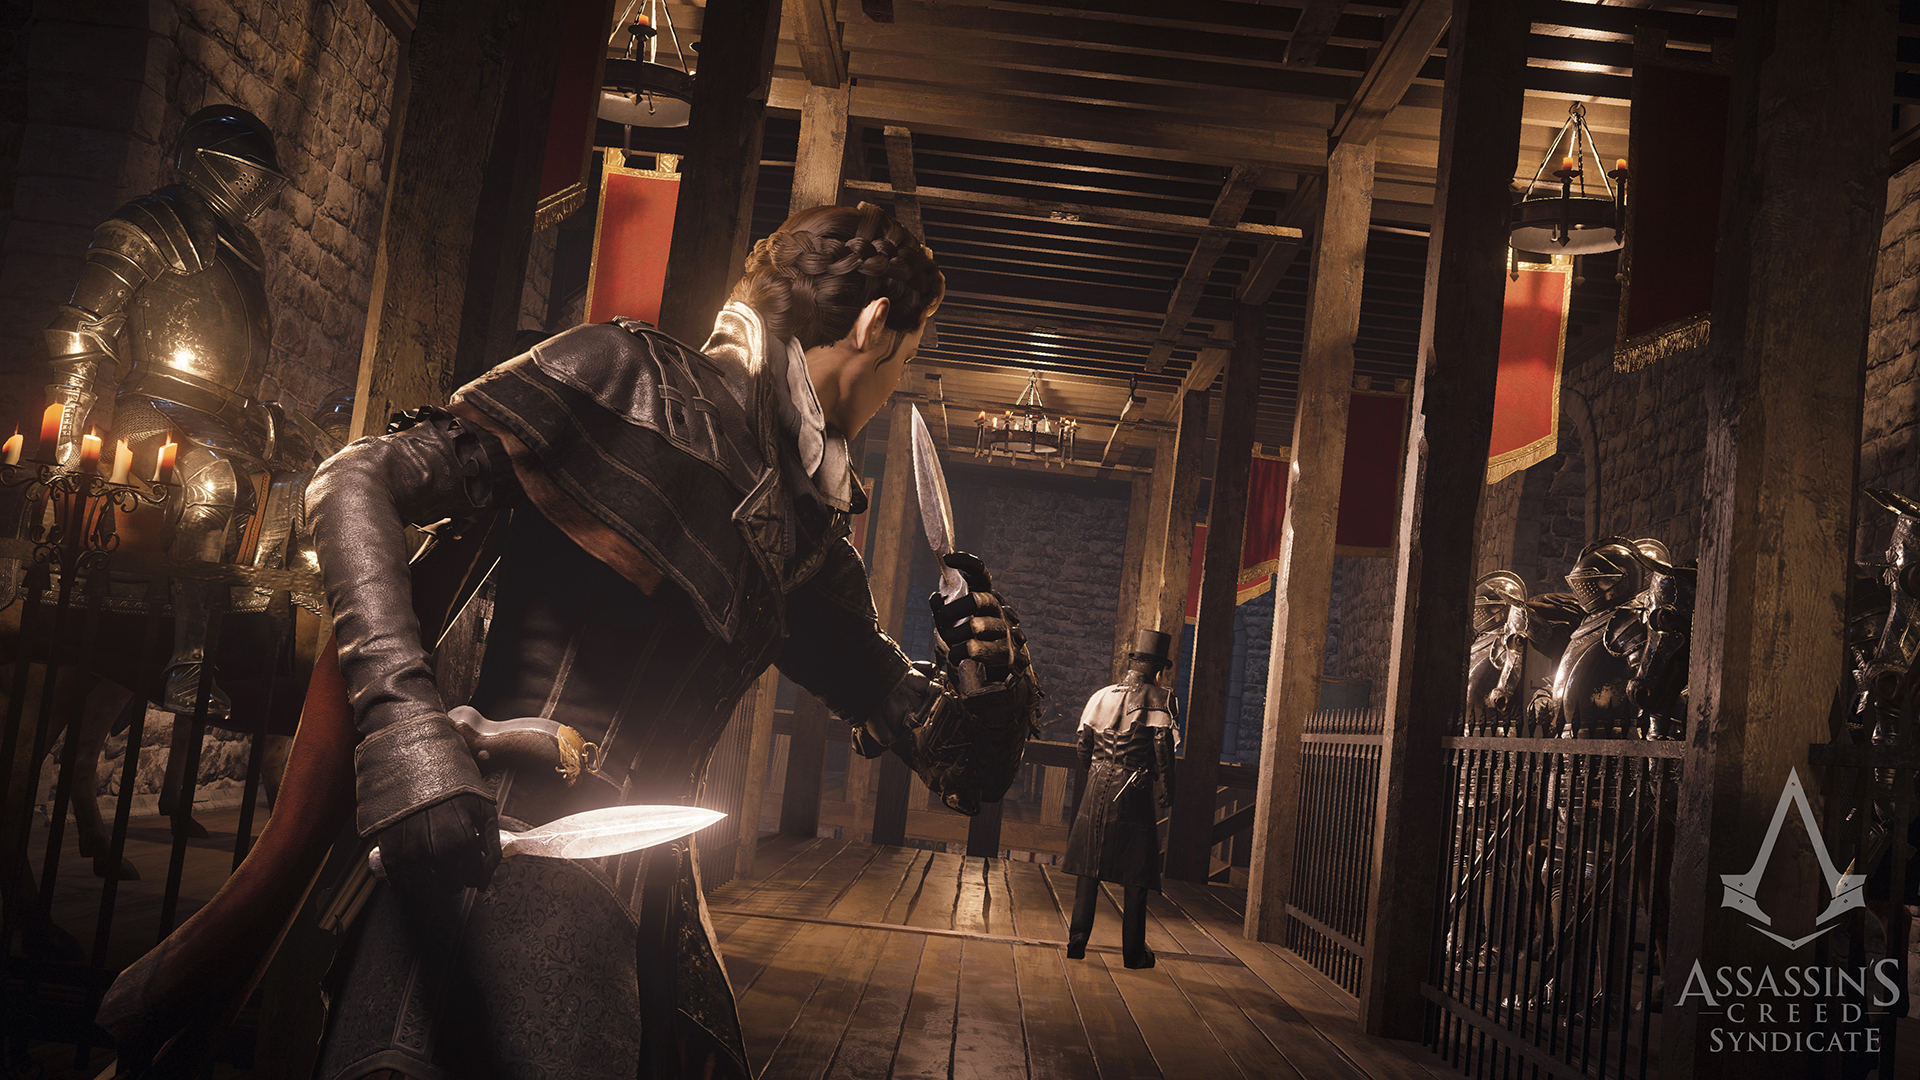 Here S The Pc Specs For Assassin S Creed Syndicate Vg247